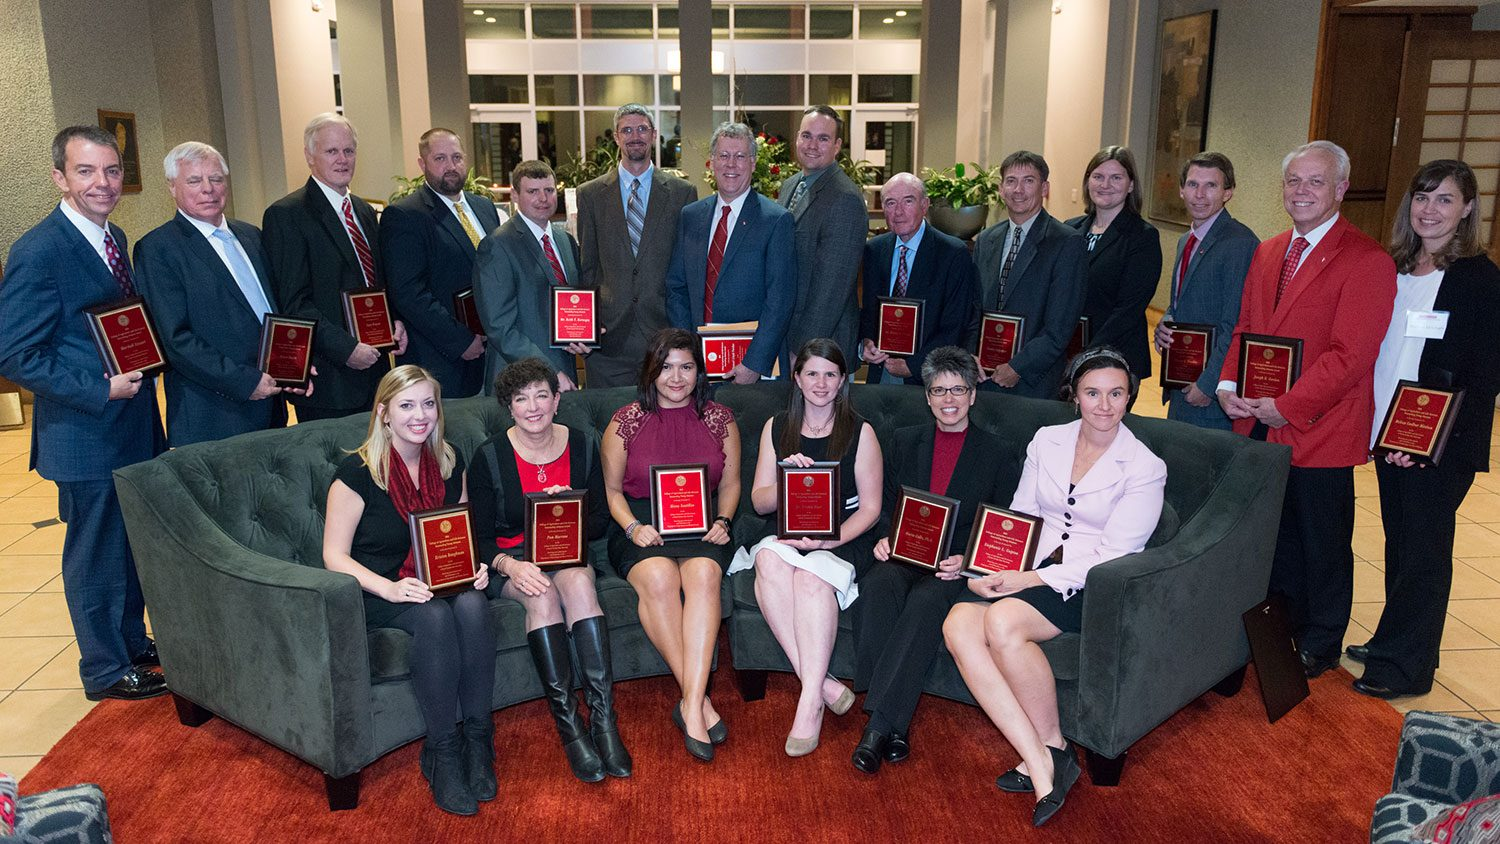 Winners of the CALS distinguished and outstanding alumni awards